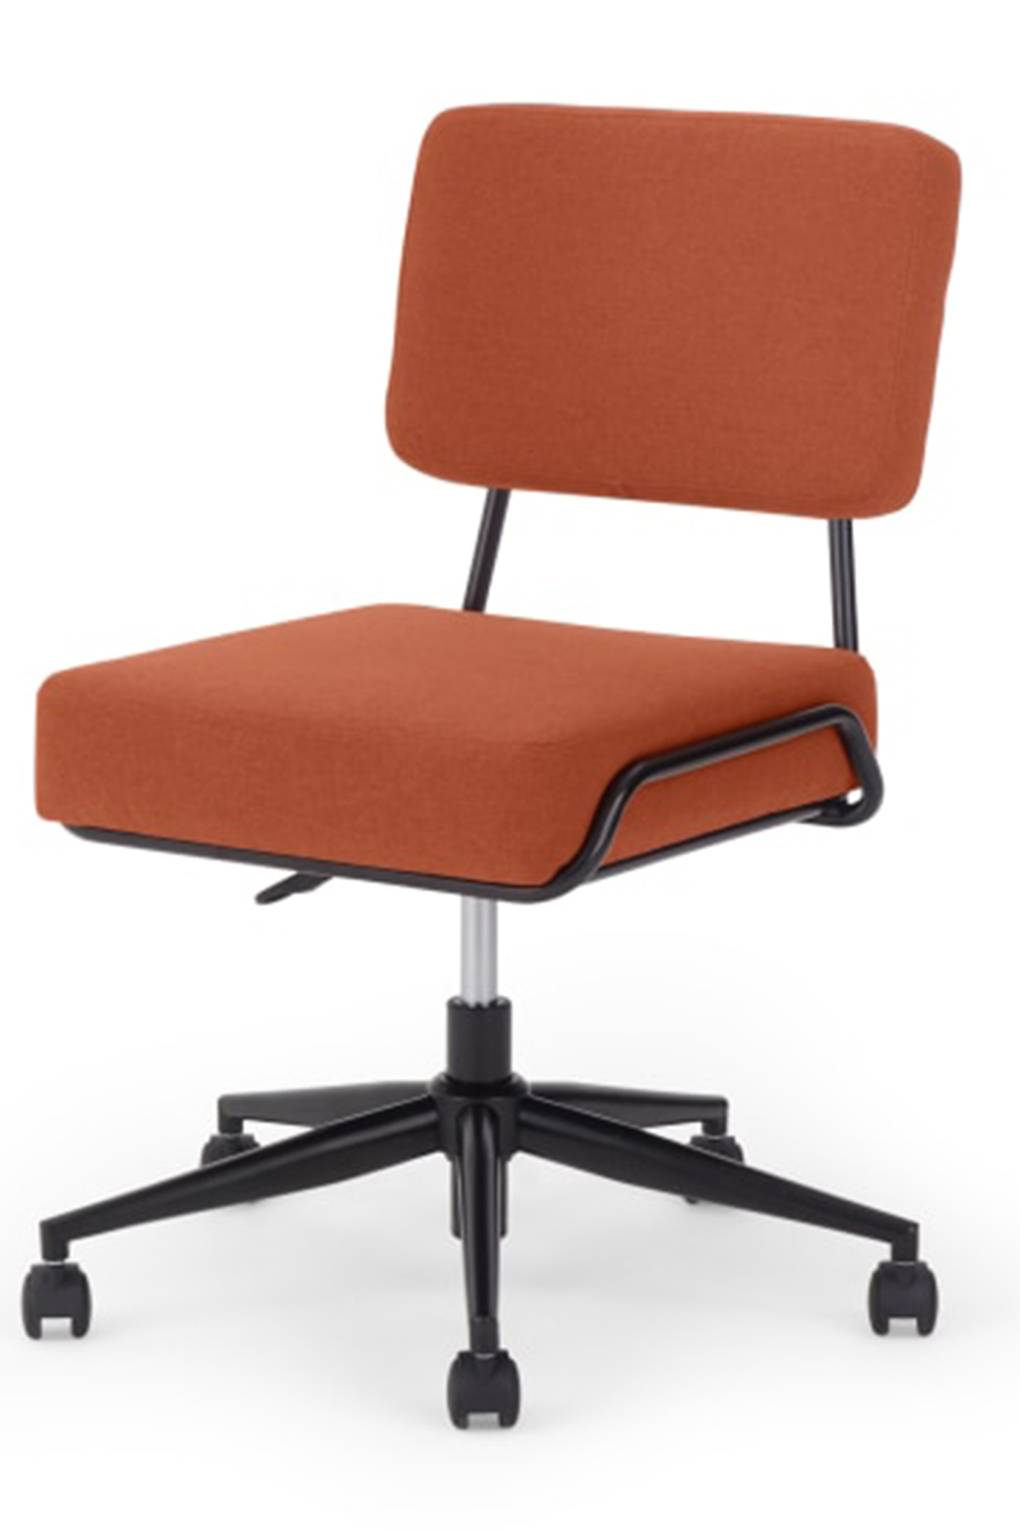 13 Best Office Chairs Still In Stock Desk Chairs For Wfh Glamour Uk